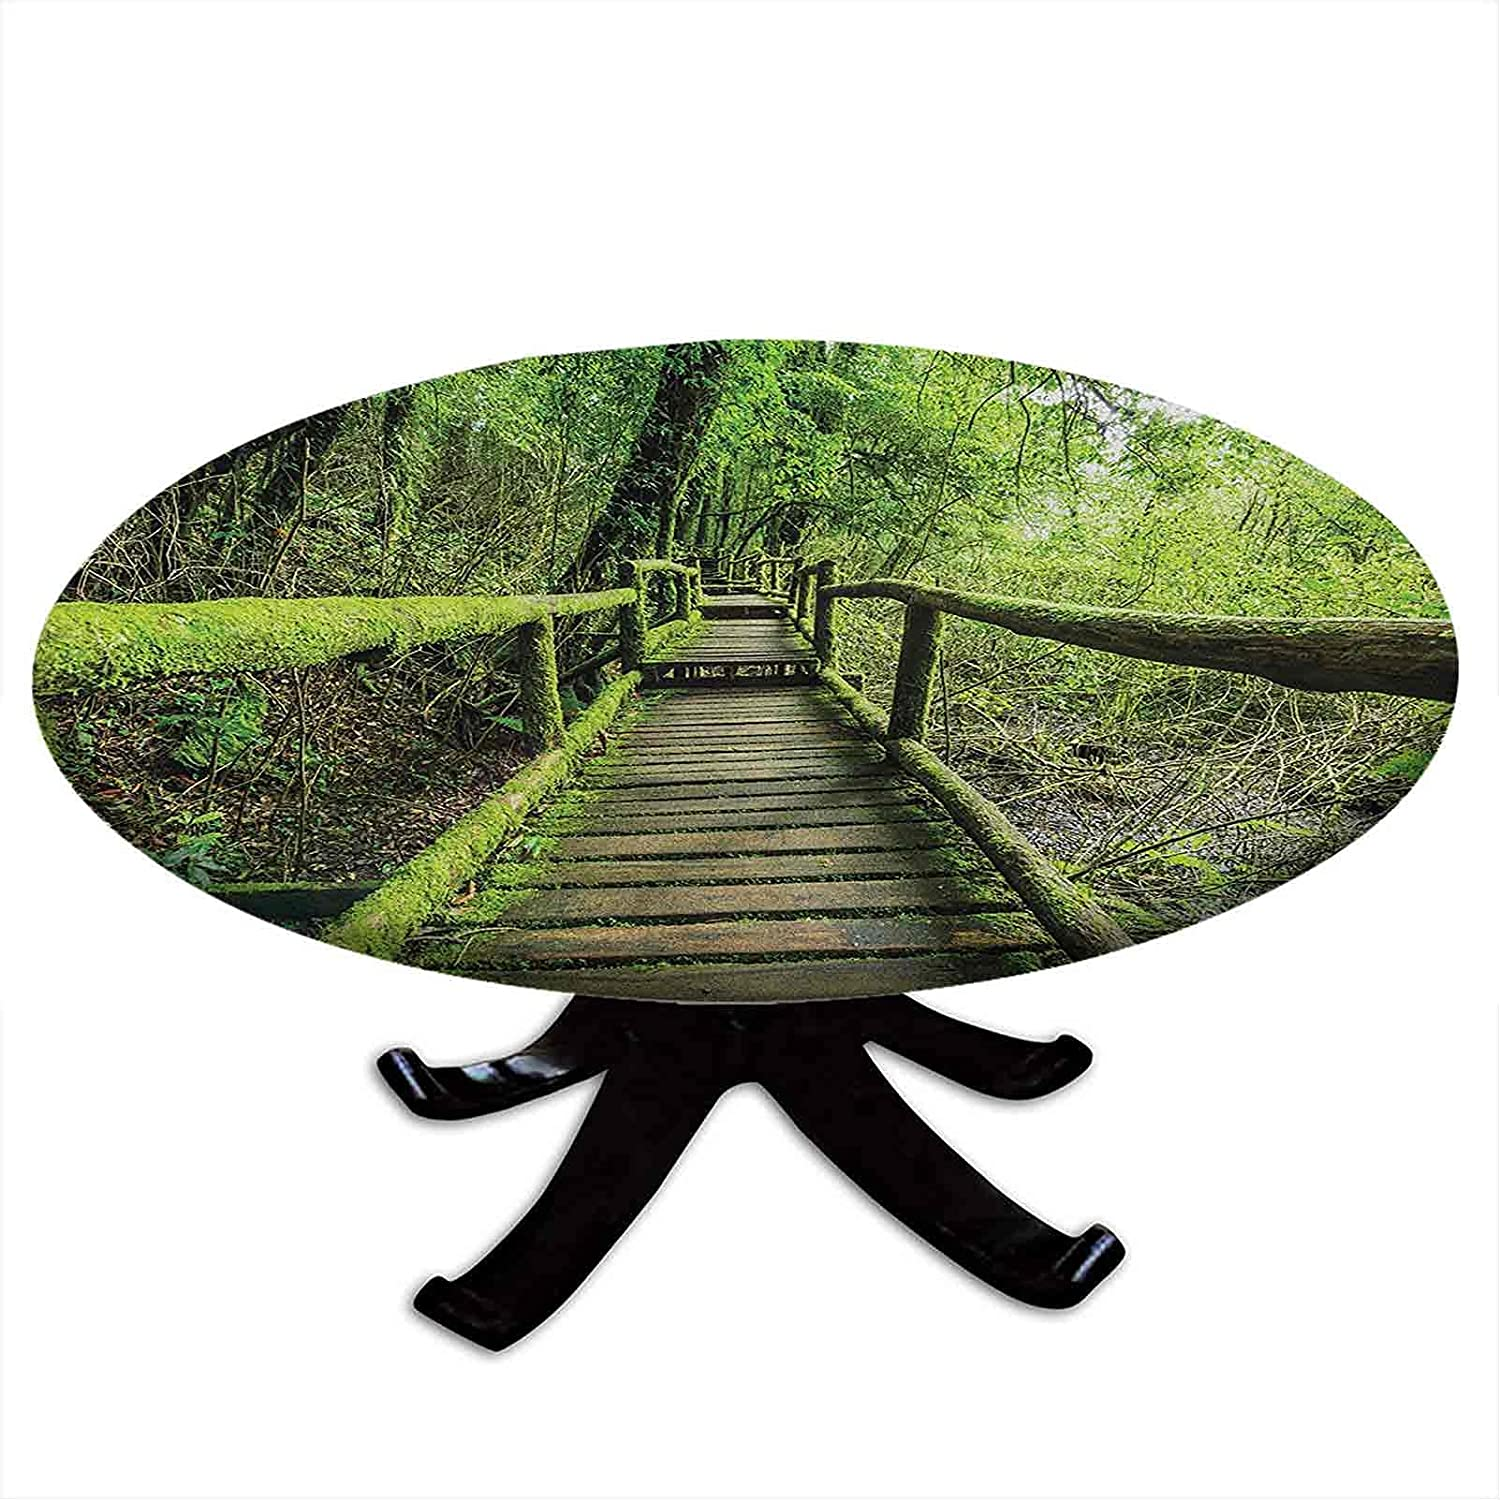 Round Fitted Regular discount New product type Rainforest Tablecloth Inthanon Mount in